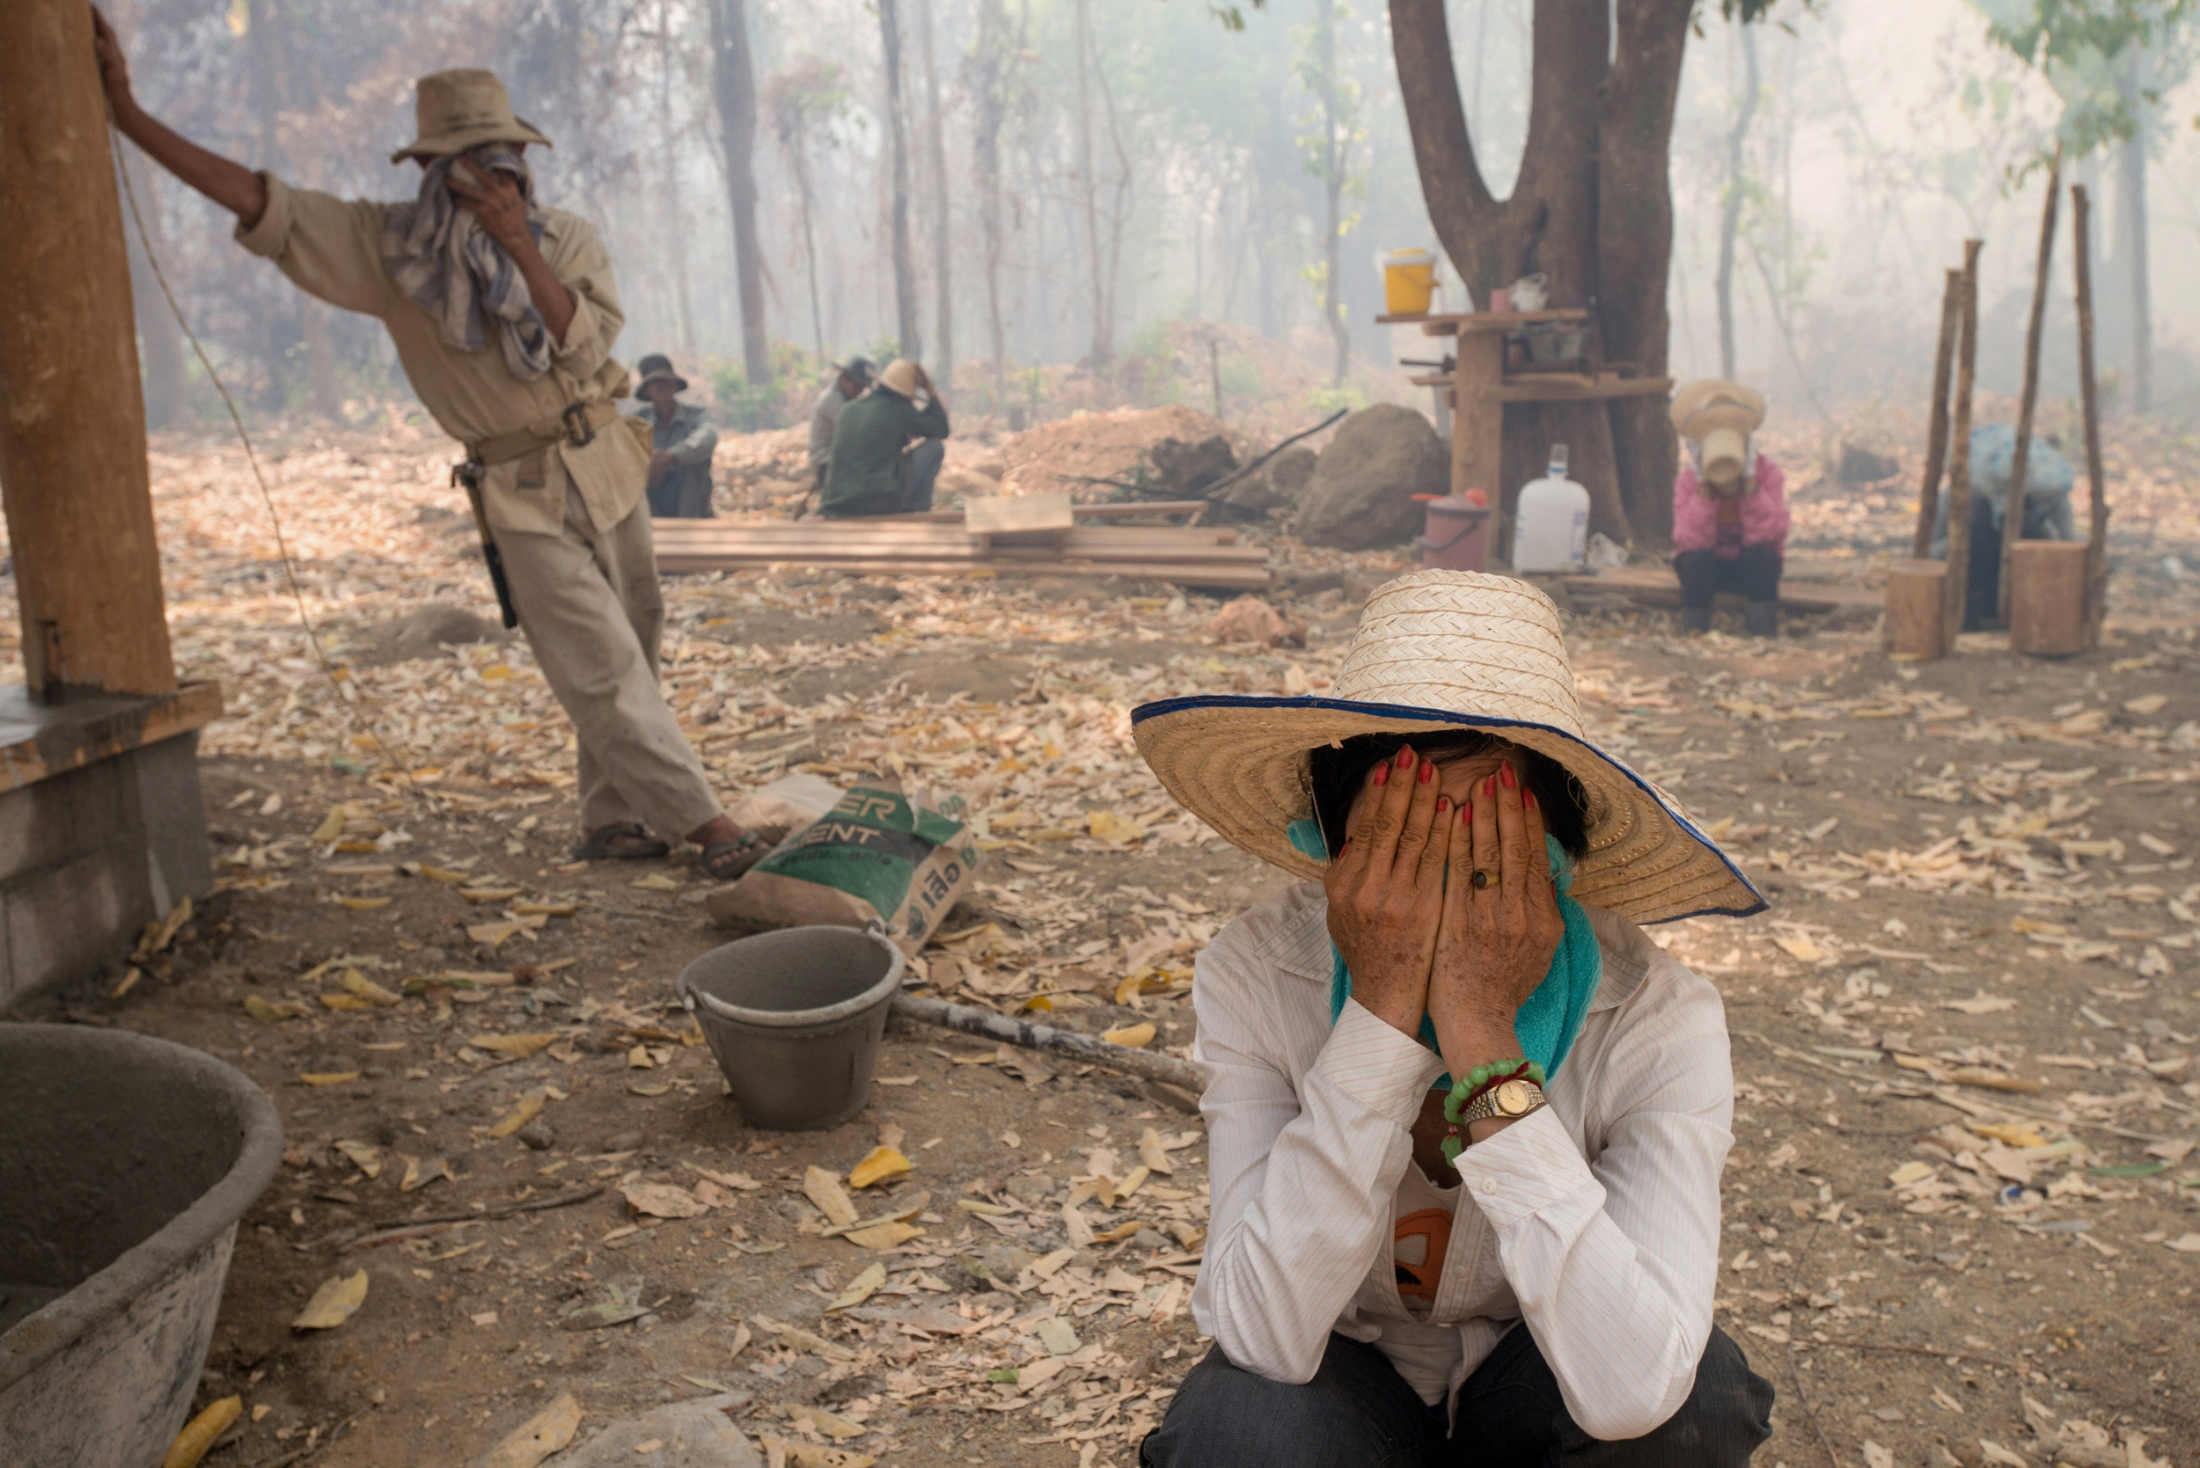 Wildfire occurs during the daytime in a place outside of the city. Widely effects the nearby areas where labors working are covered in haze.